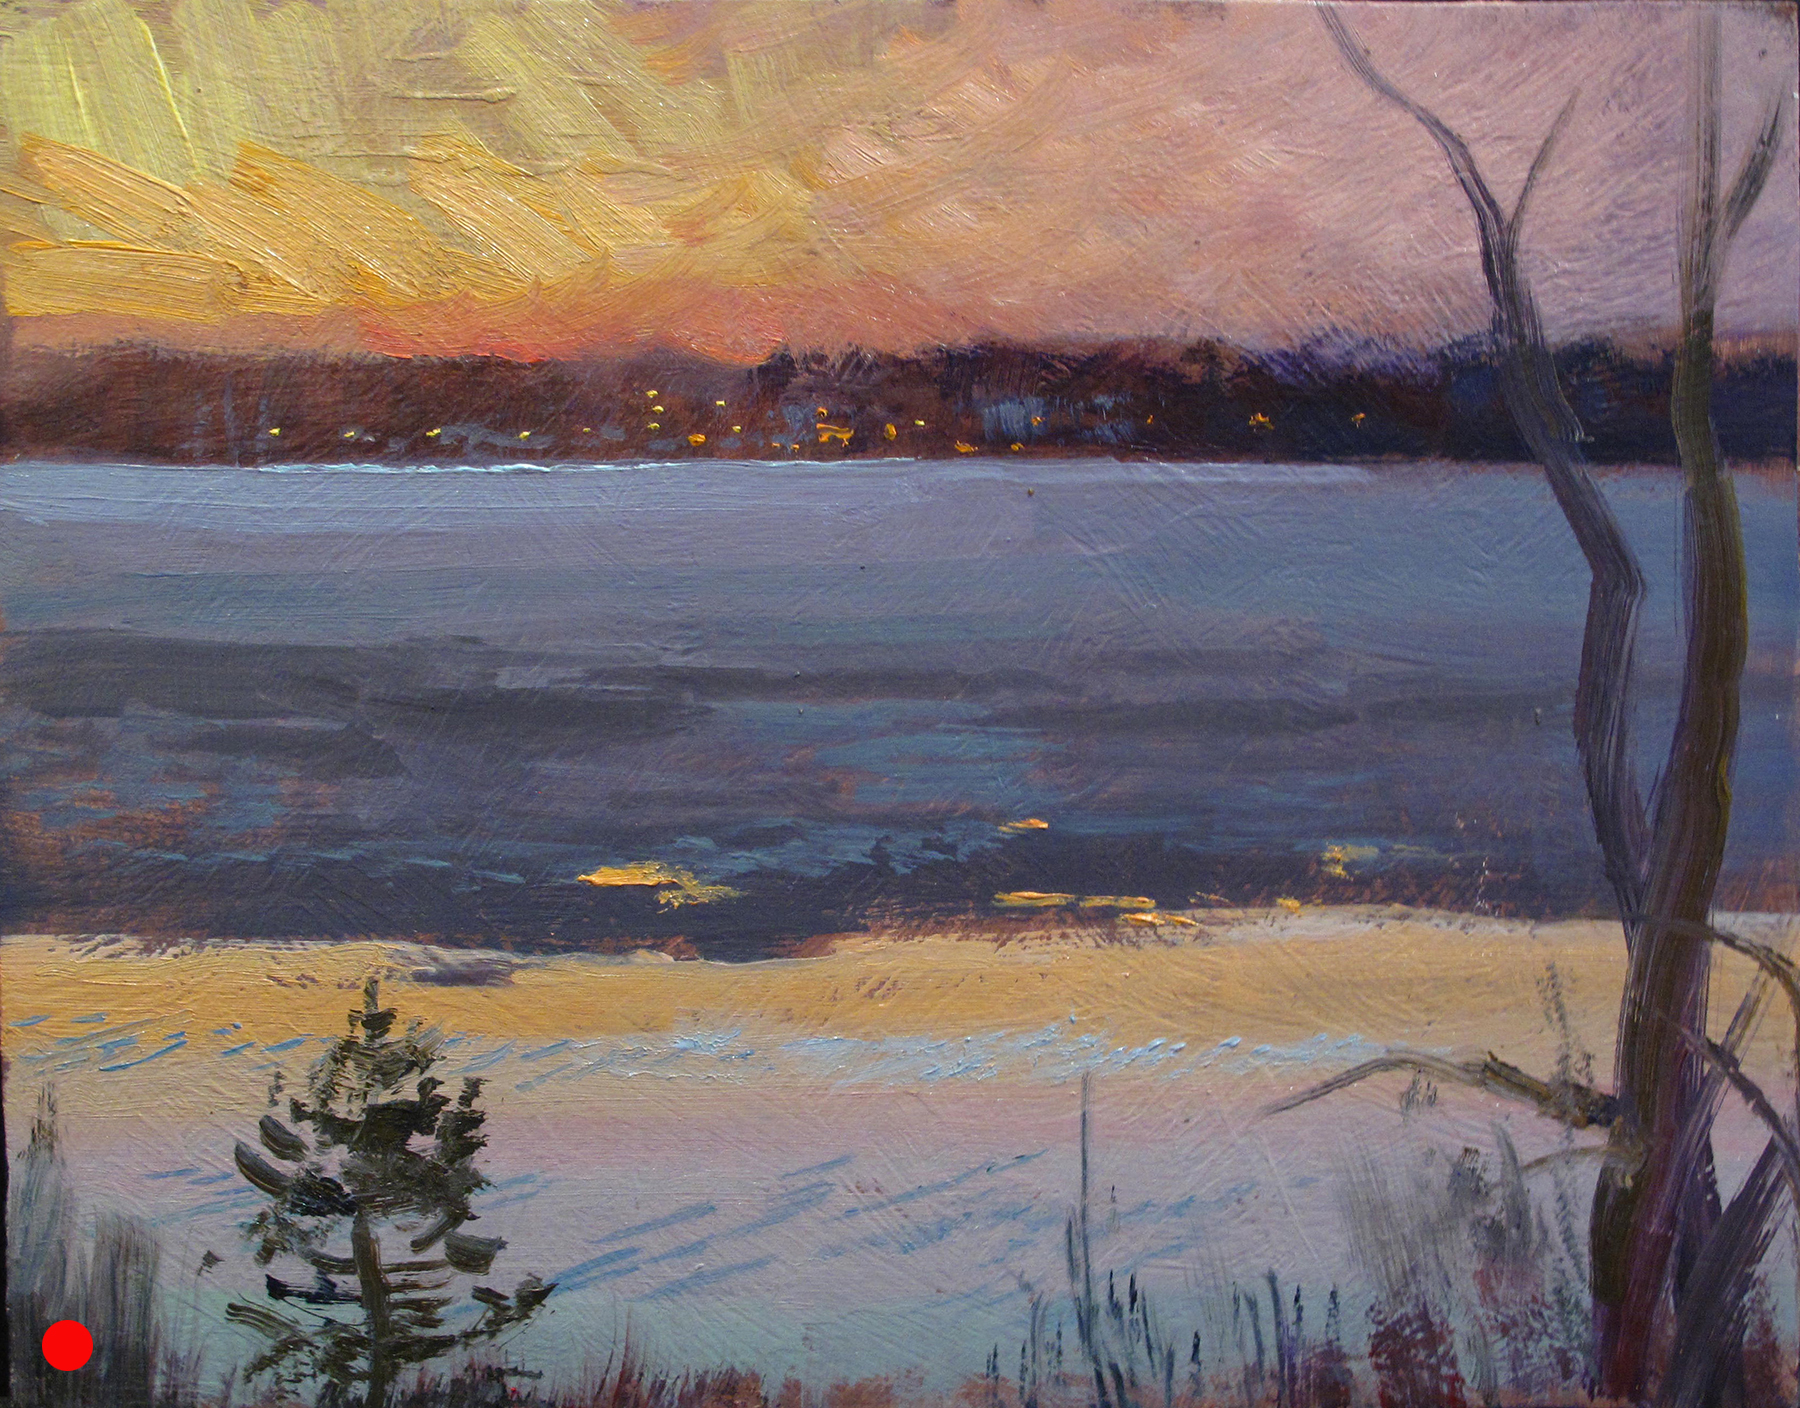 Ice Out Out, Lake Harriet  8 x 10, oil on panel In the spring it melts from the outside in. In the fall, it freezes that way as well. (SOLD)